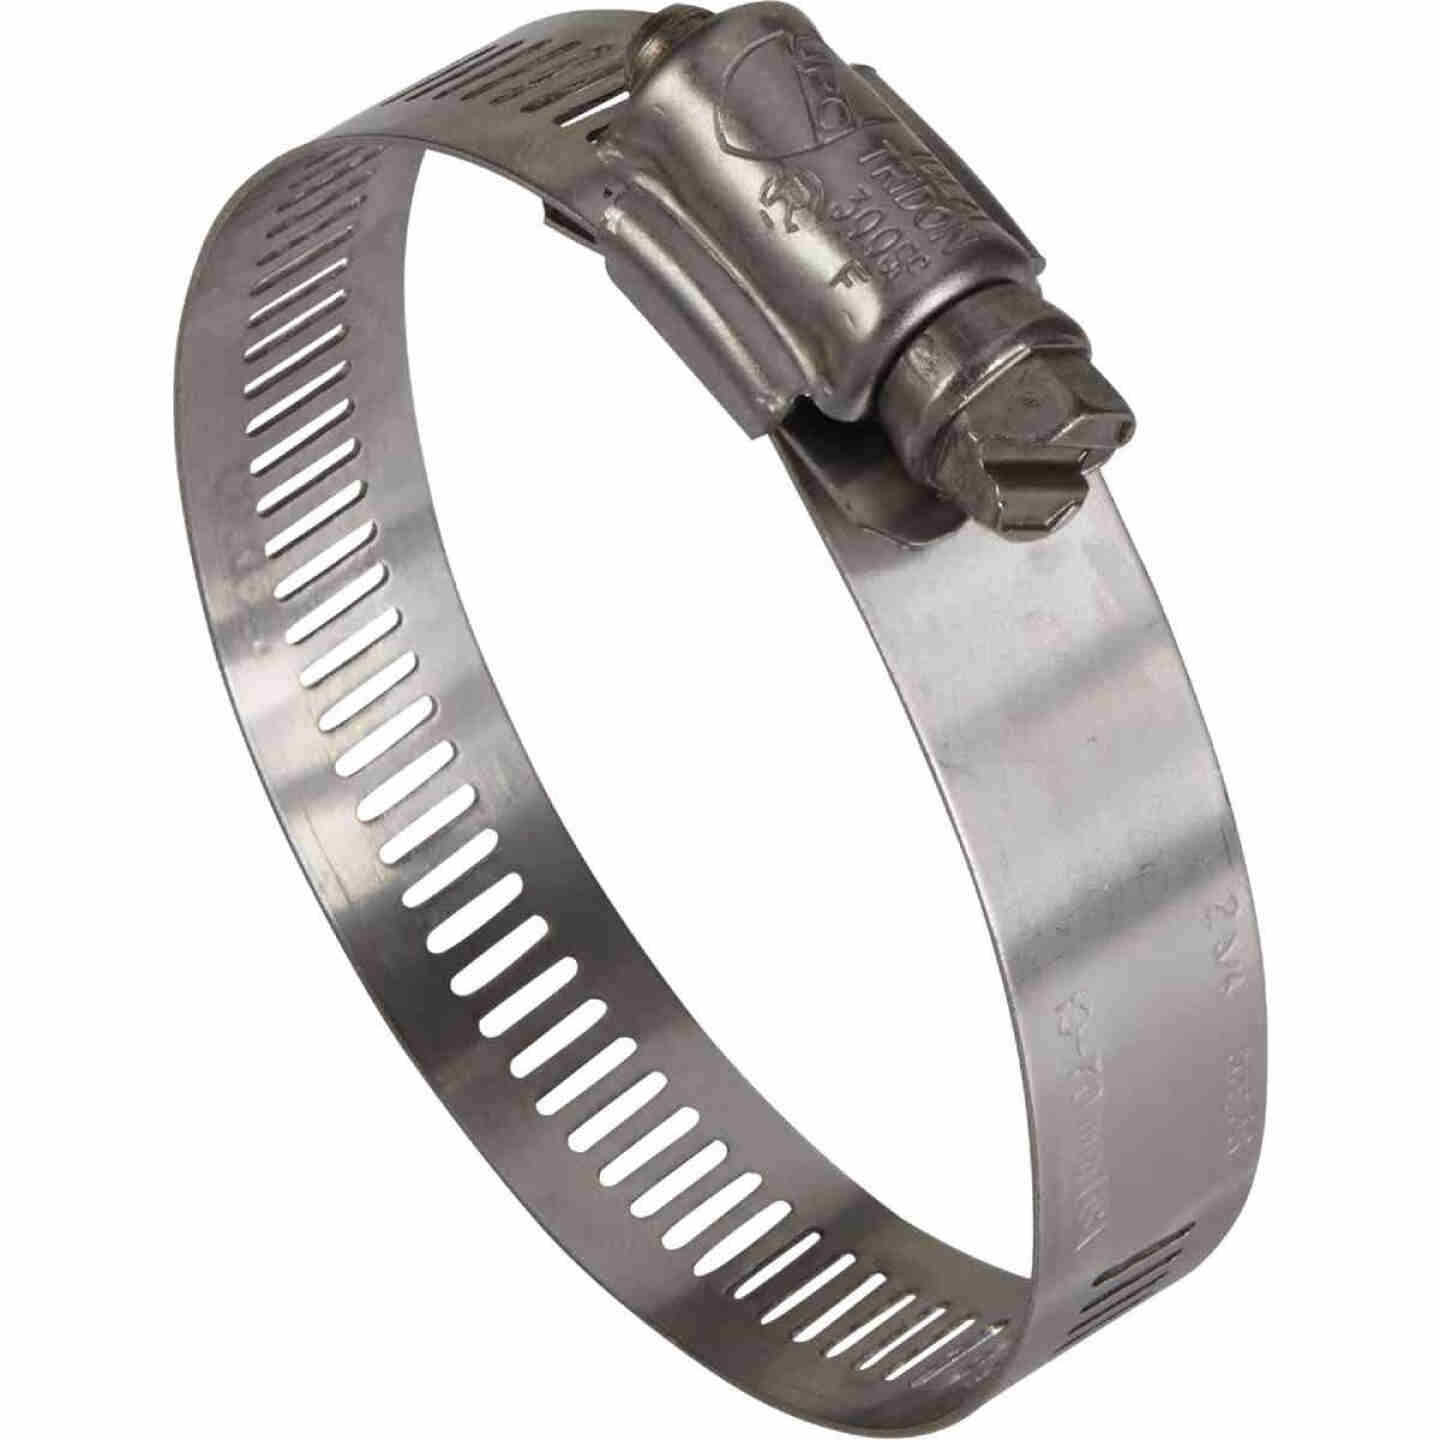 Ideal 1-3/4 In. - 2-3/4 In. Marine-Grade Hose Clamp Image 1